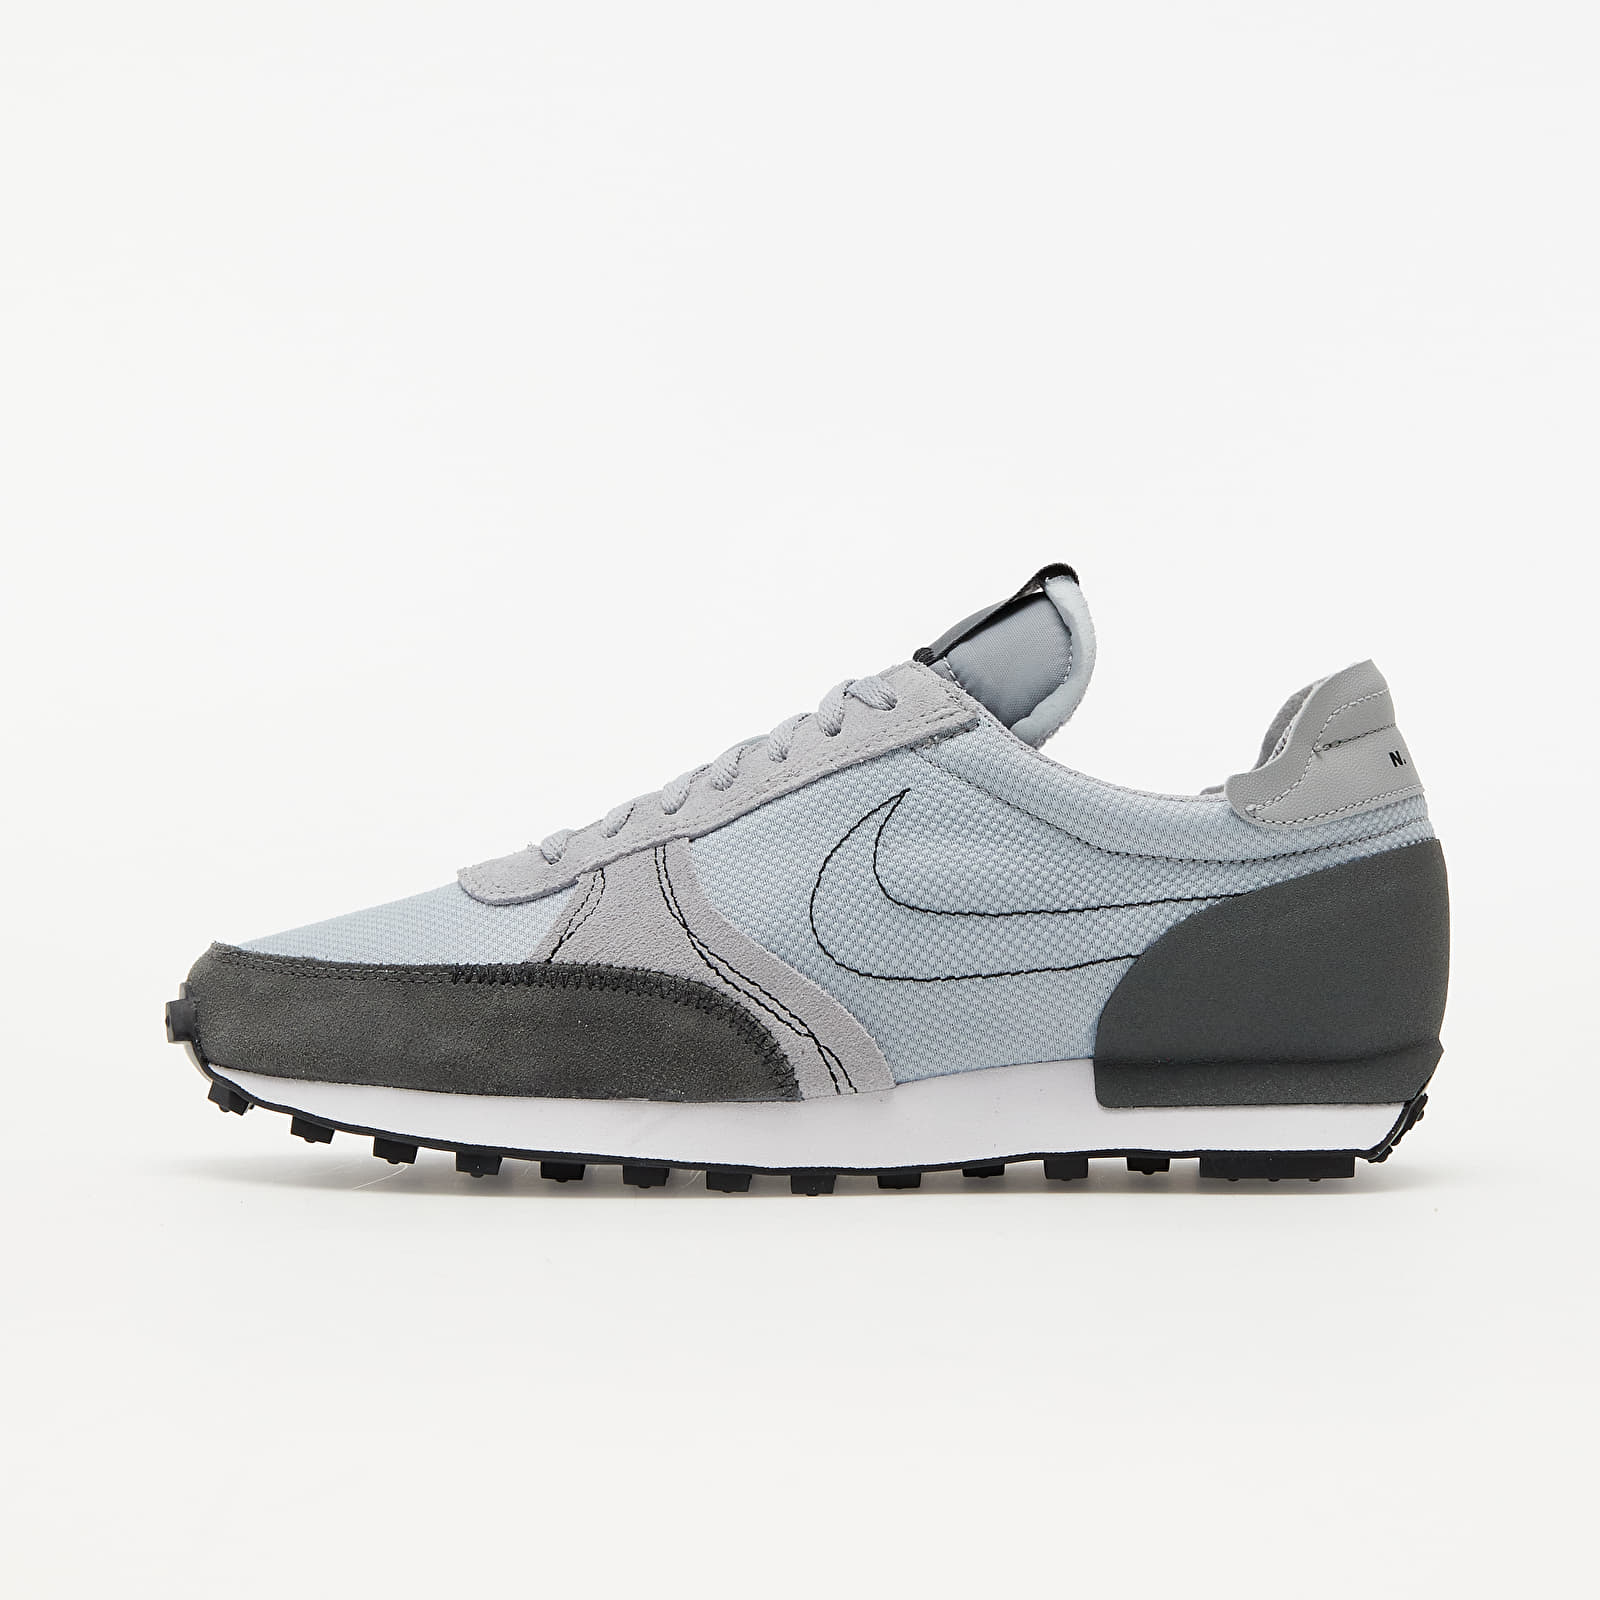 Nike Daybreak-Type Wolf Grey/ Black-Iron Grey-White EUR 44.5